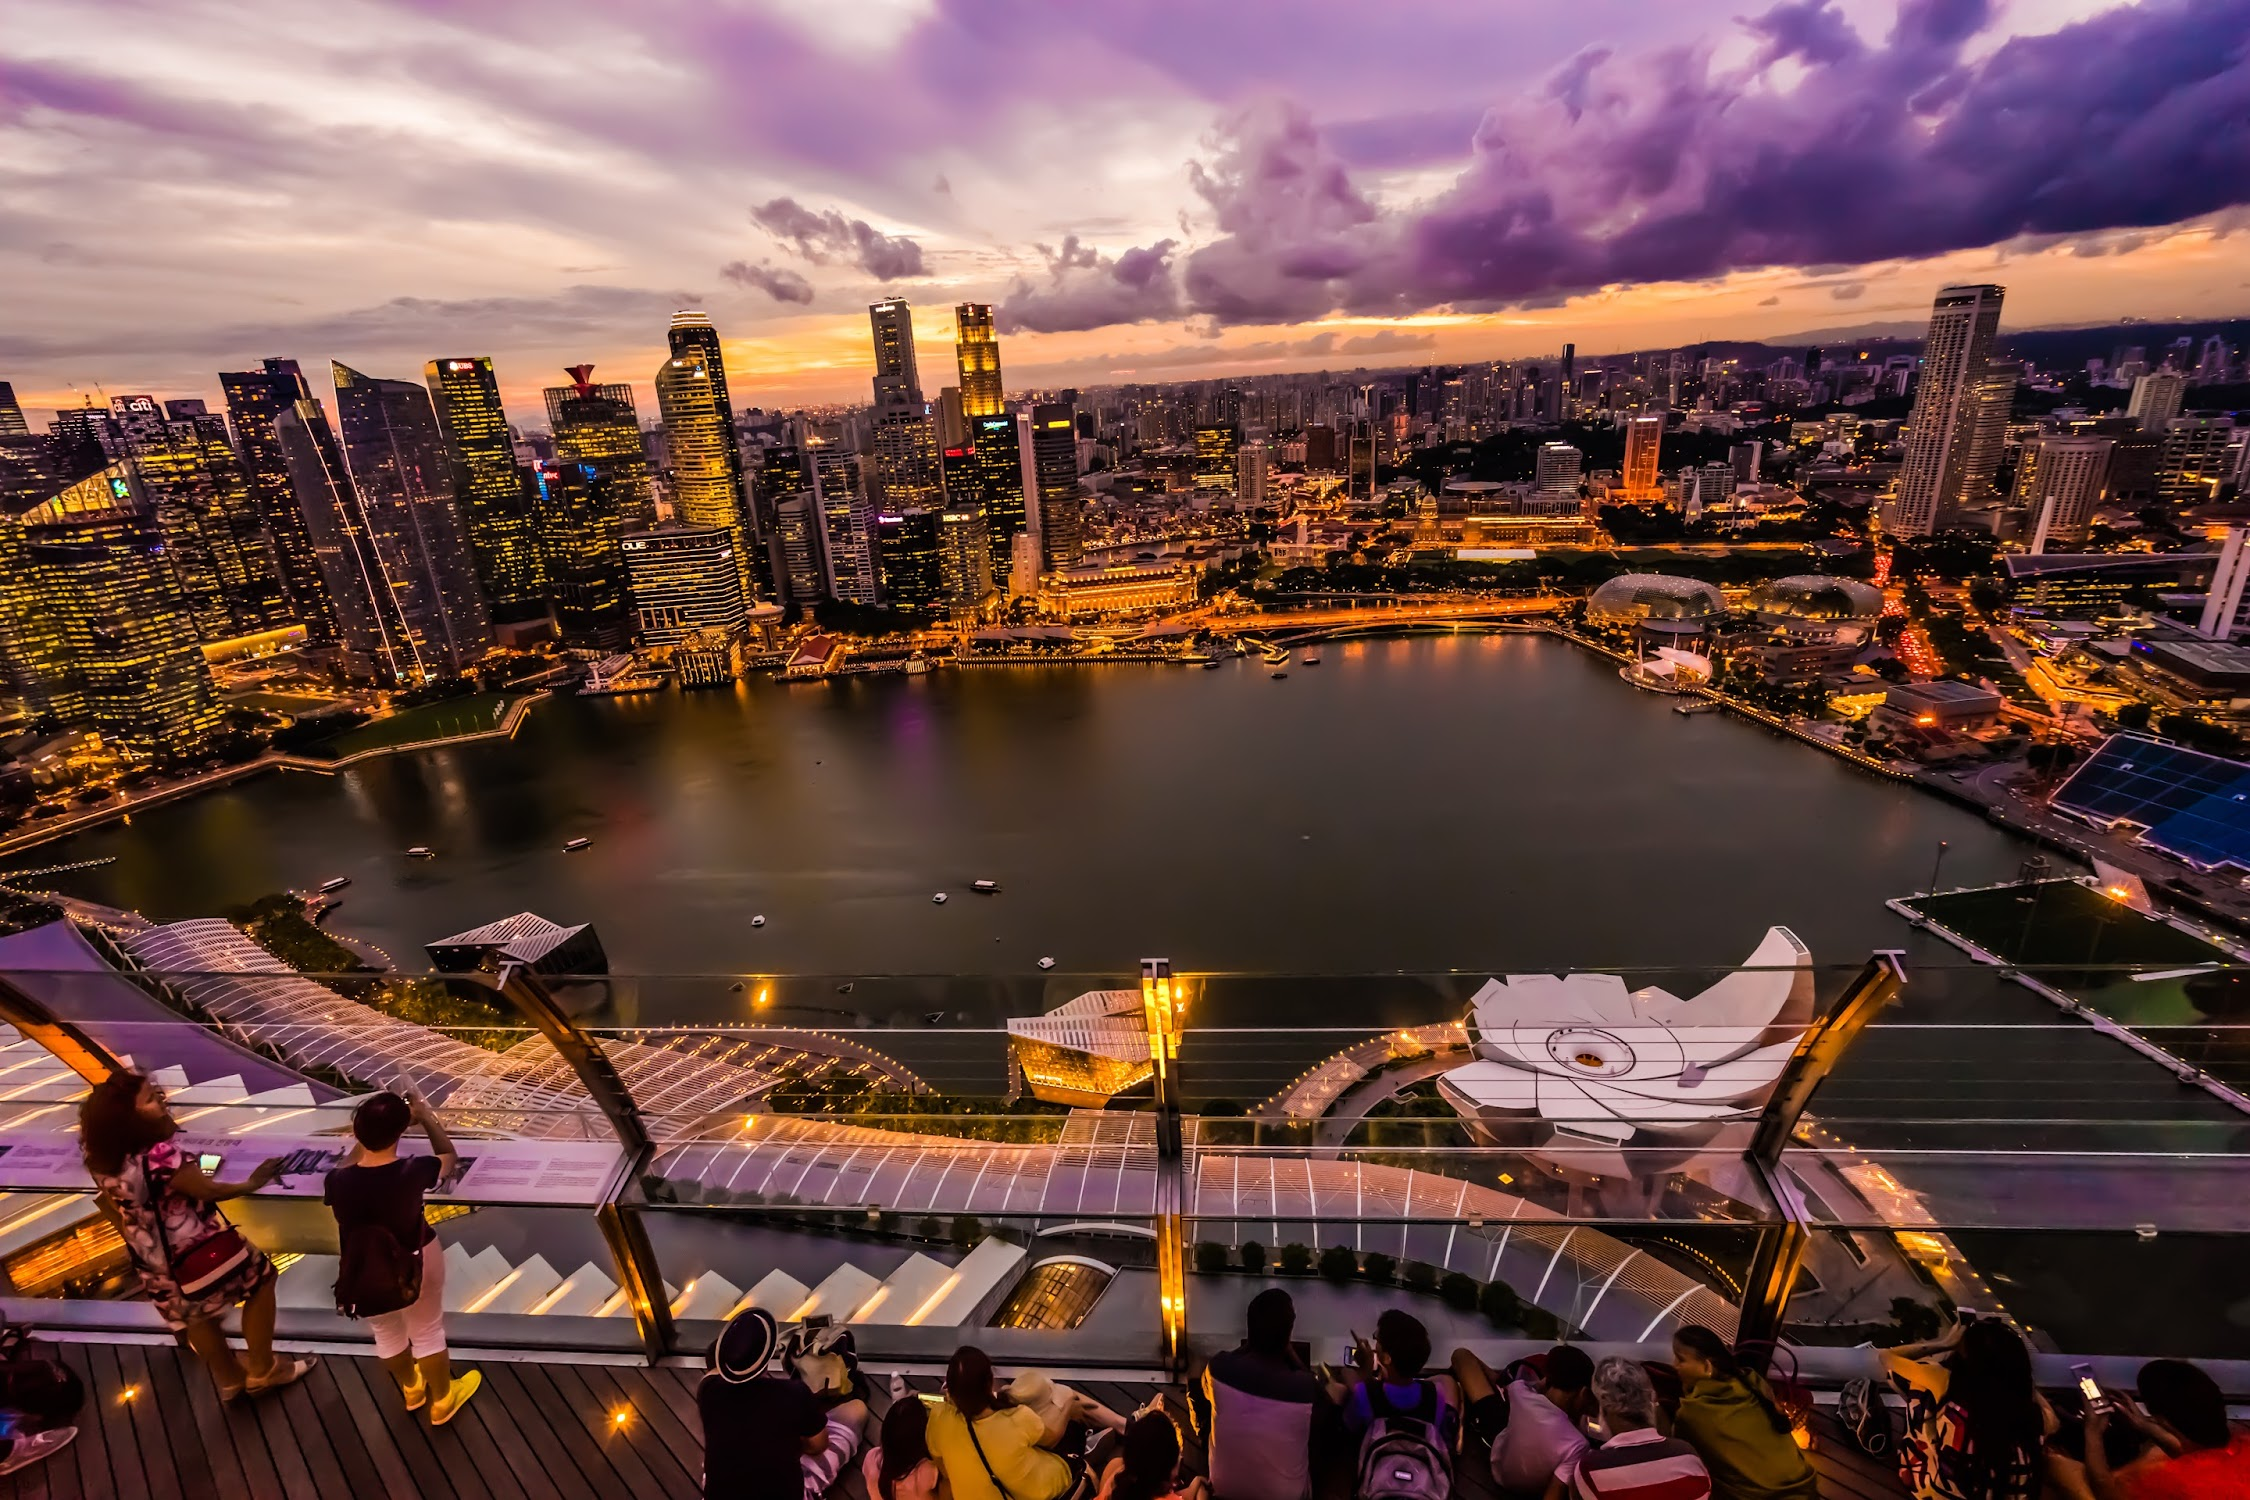 Singapore Marina bay Sands SkyPark Observation Deck night view3